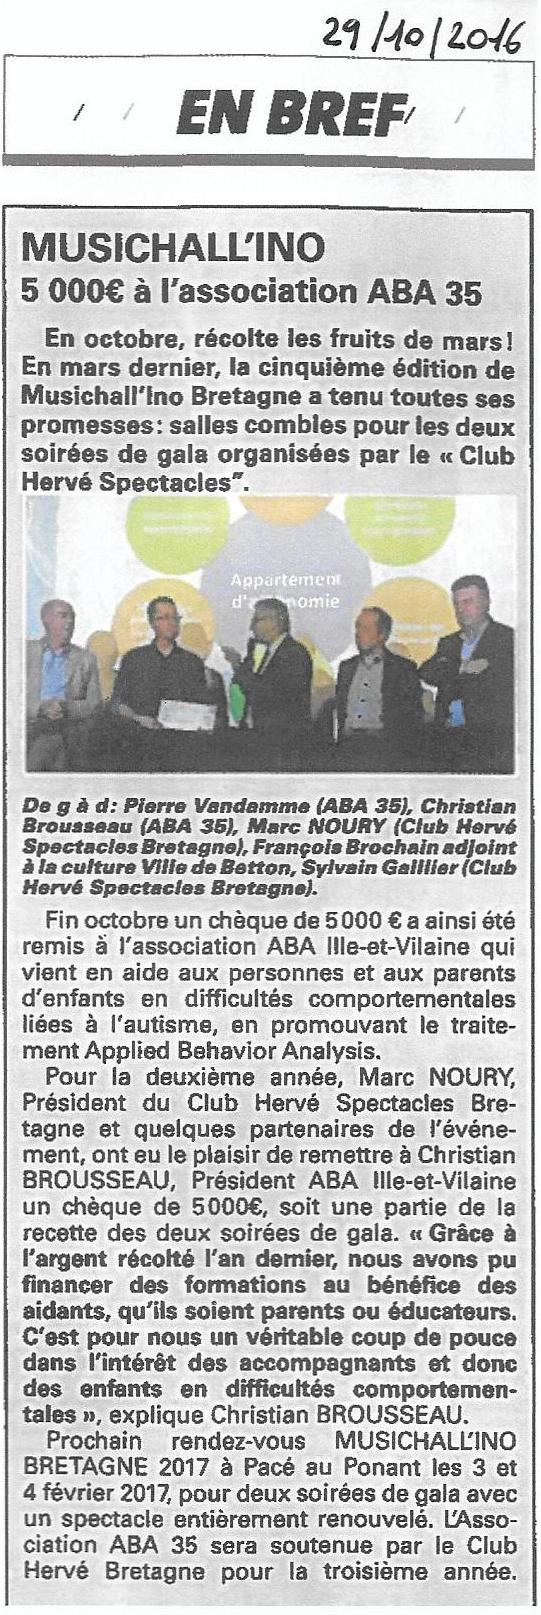 Magasine 7 jours - 5 000 € remis à l'association ABA